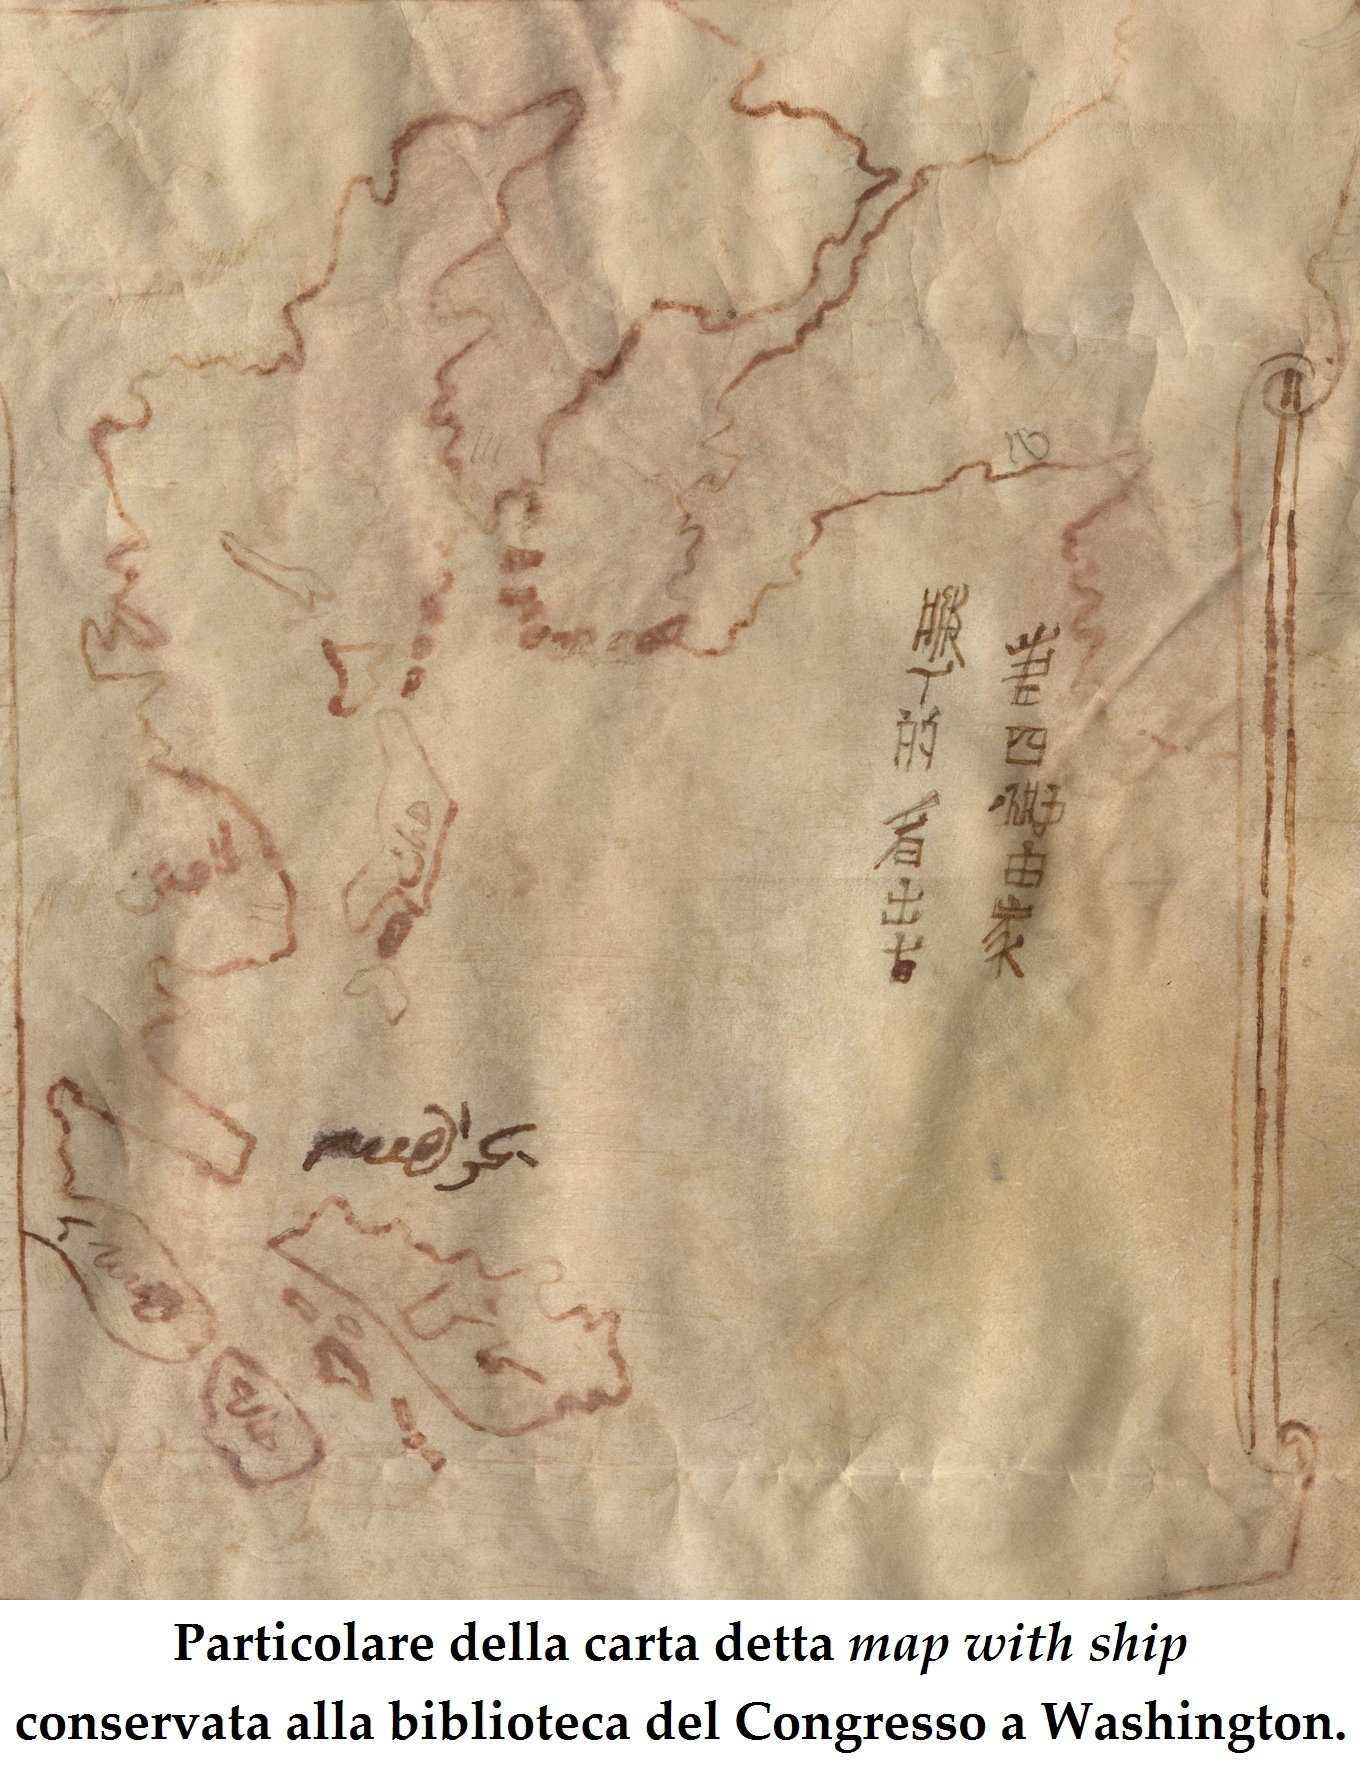 carta map with ship